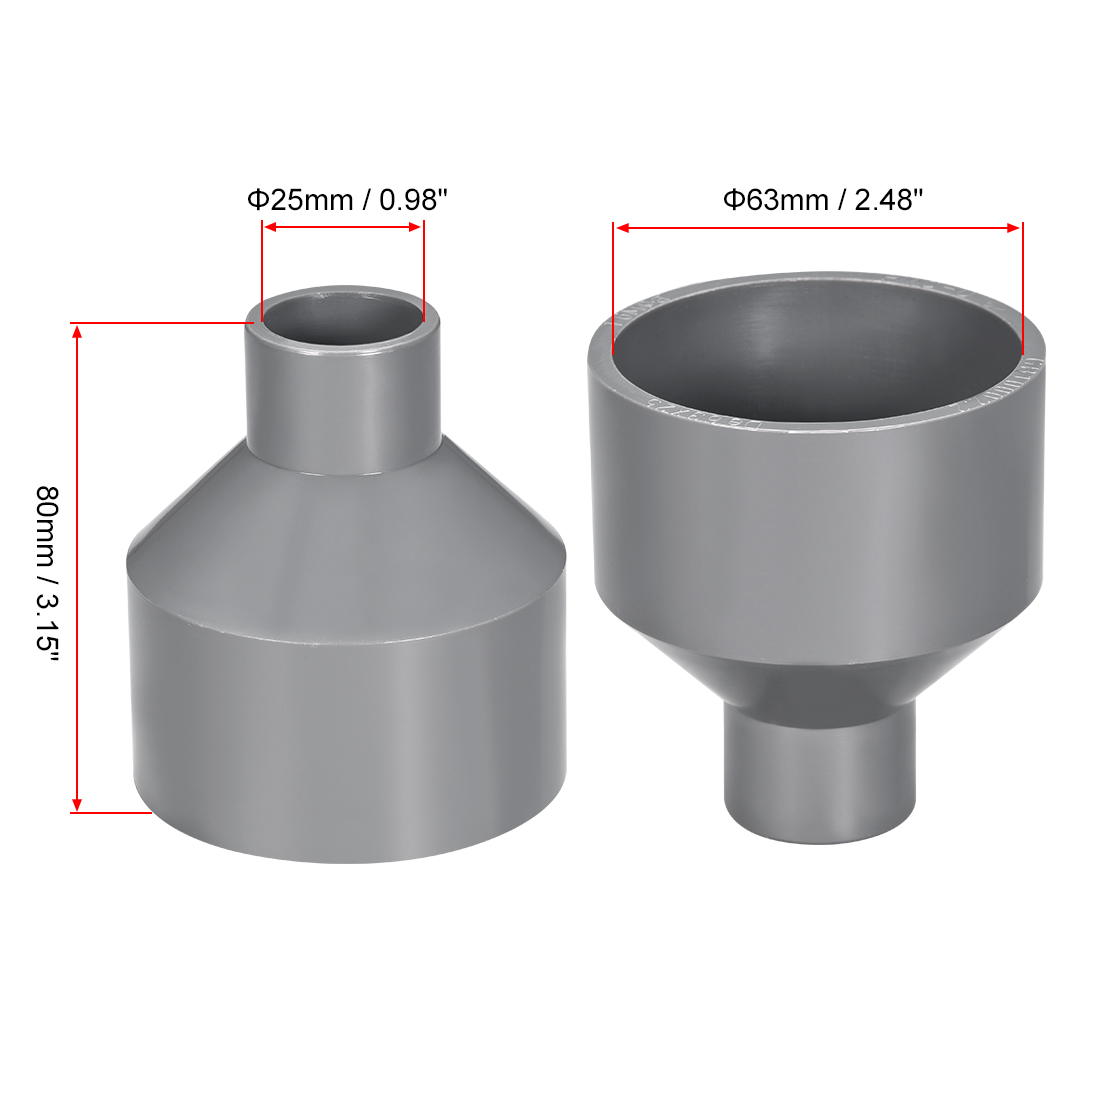 Pipe Fittings Joiner Connector Tee Peice Air Fuel 4mm PLASTIC T PIECE